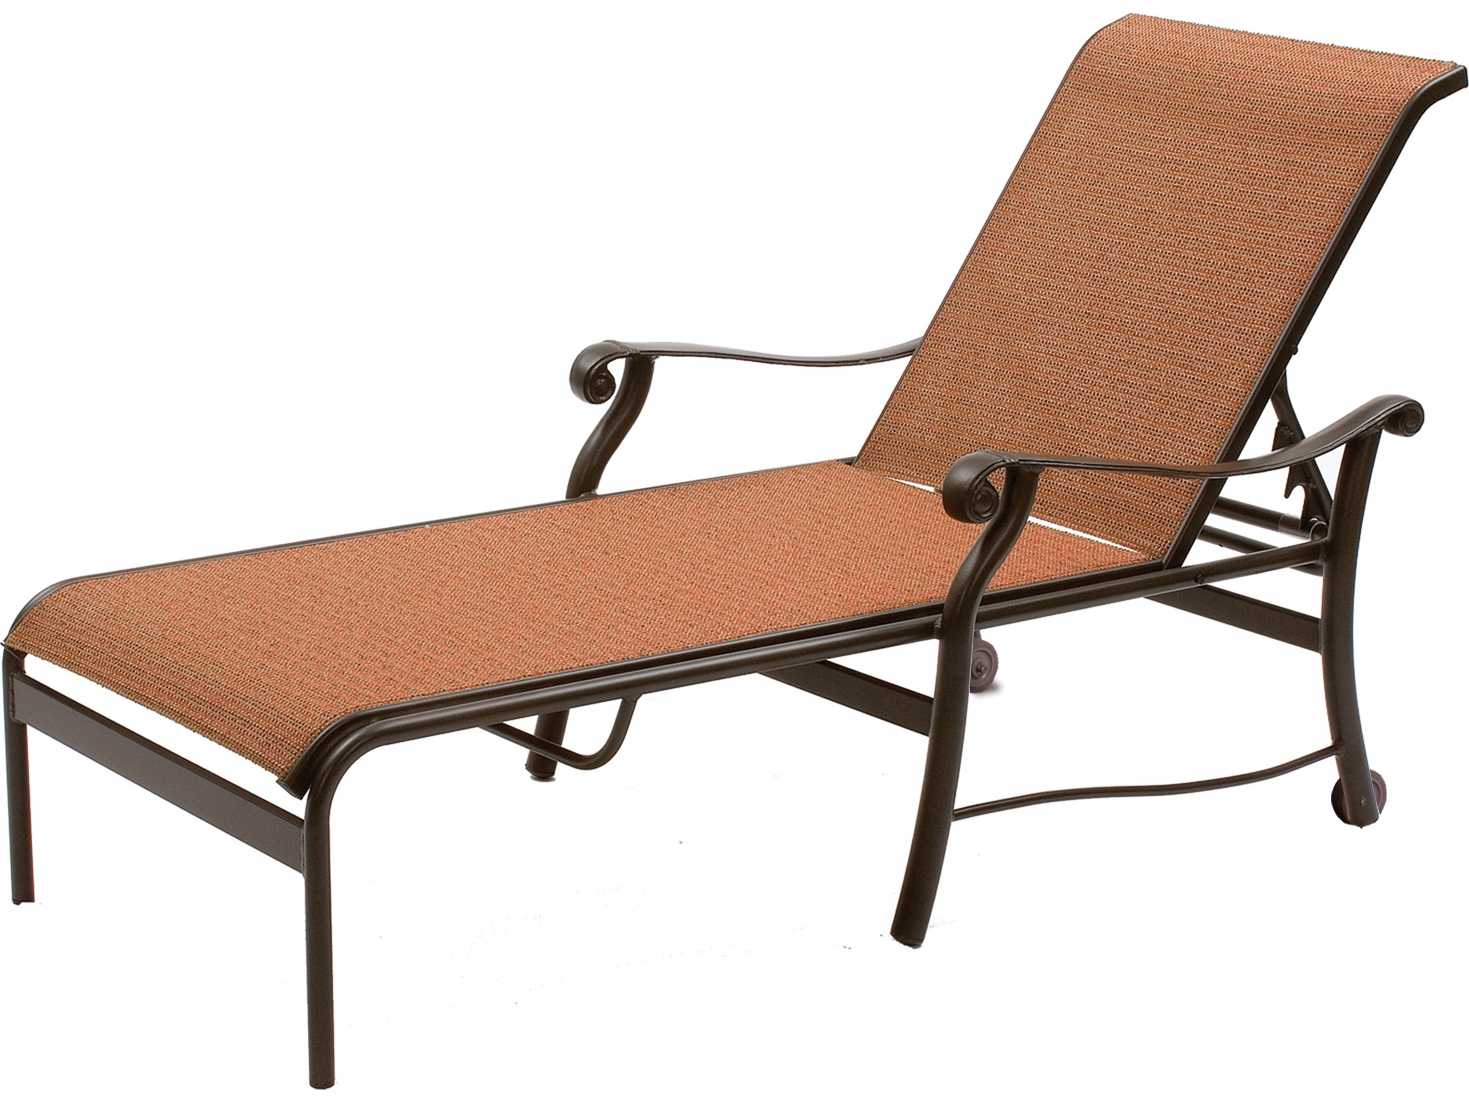 metal lounge chair with wheels antique arm chairs suncoast rendezvous sling cast aluminum heavy chaise